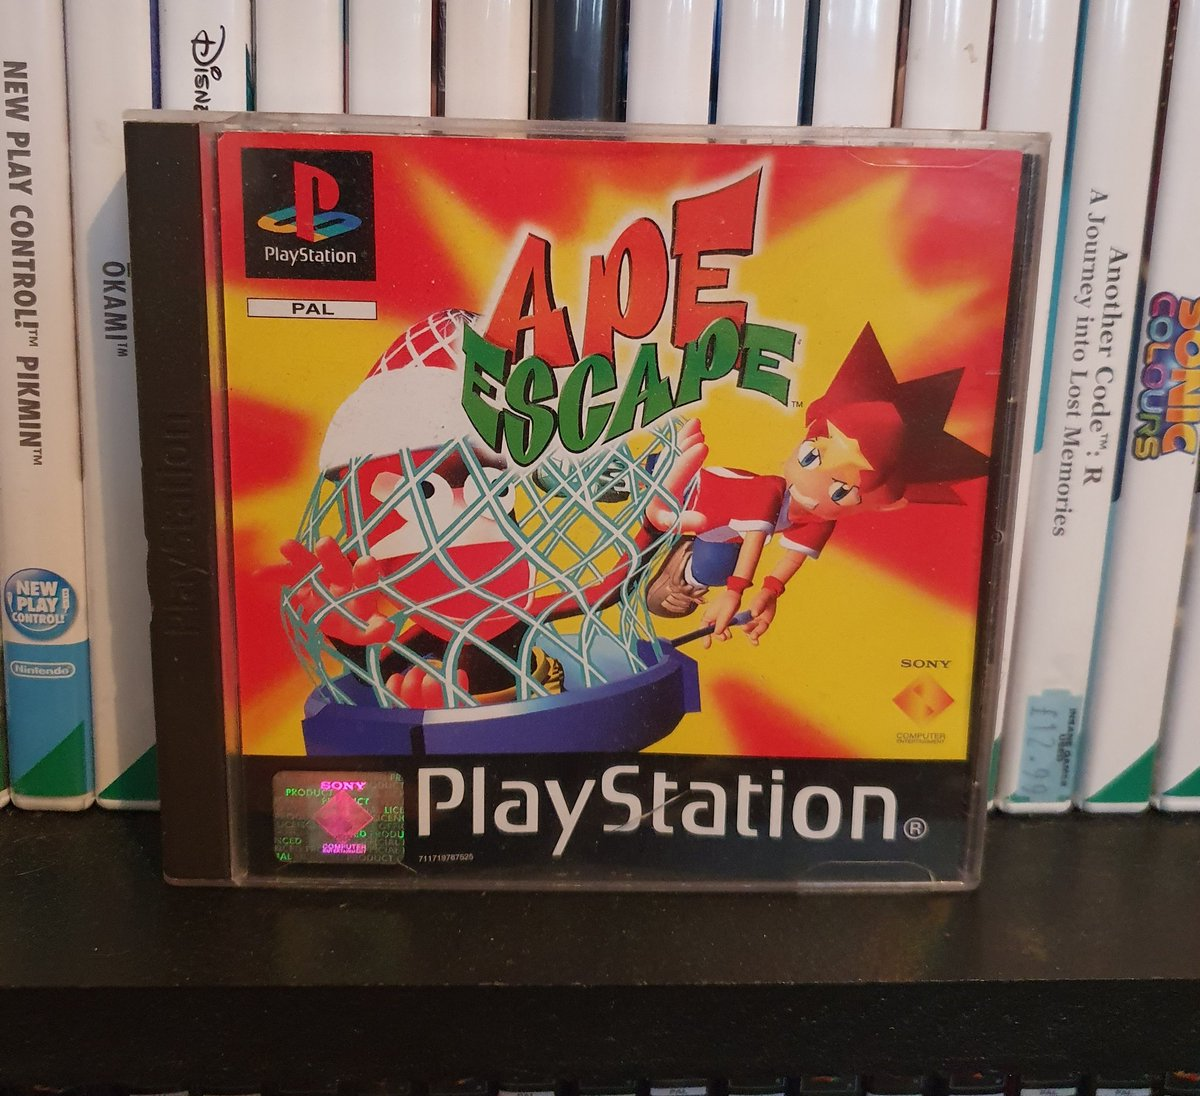 Its #PS1day and today I'm showing off Ape escape  One series that definitely deserves to make a return either this or next gen. Who else loves these games? https://t.co/3SaDZ46sRK